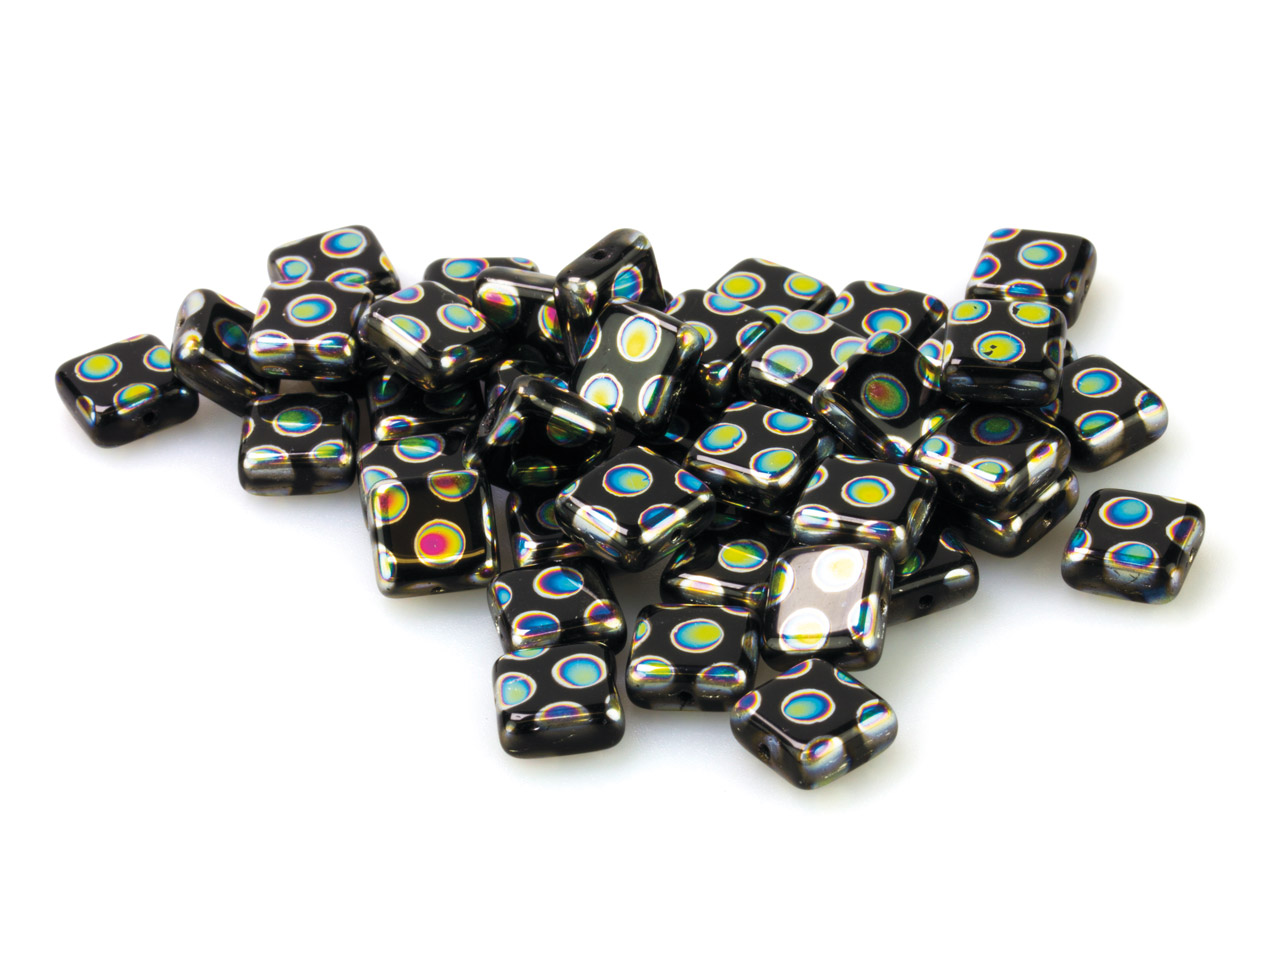 Black Glass Square Beads, Vacuum   Plated With Coloured Spots, 8mm,   Pack of 50